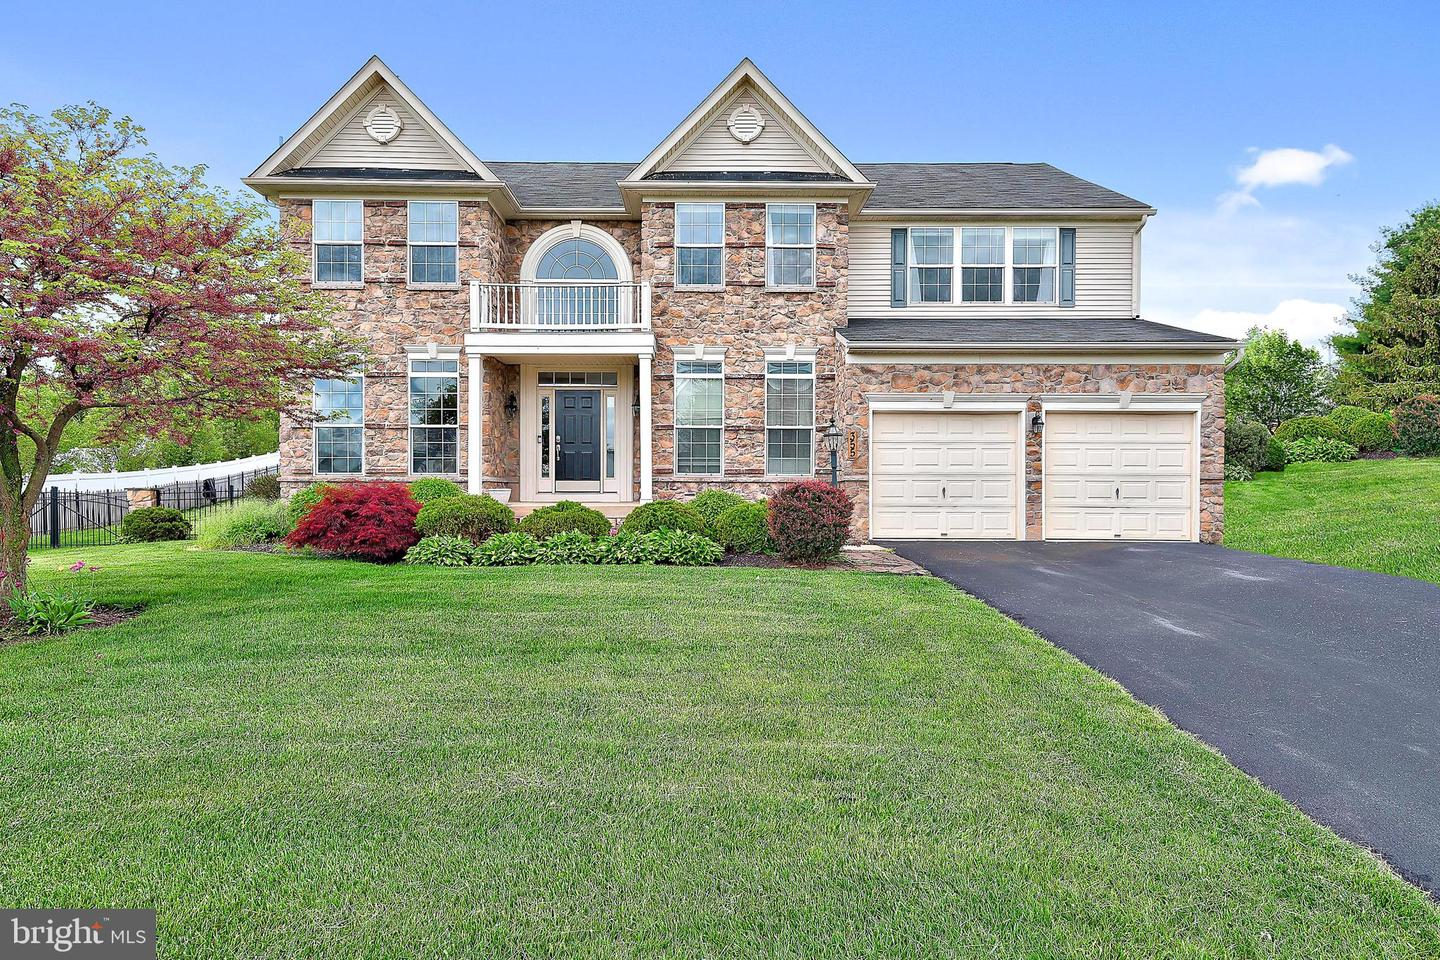 355 GREENFIELD ST, MANCHESTER, PA 17345